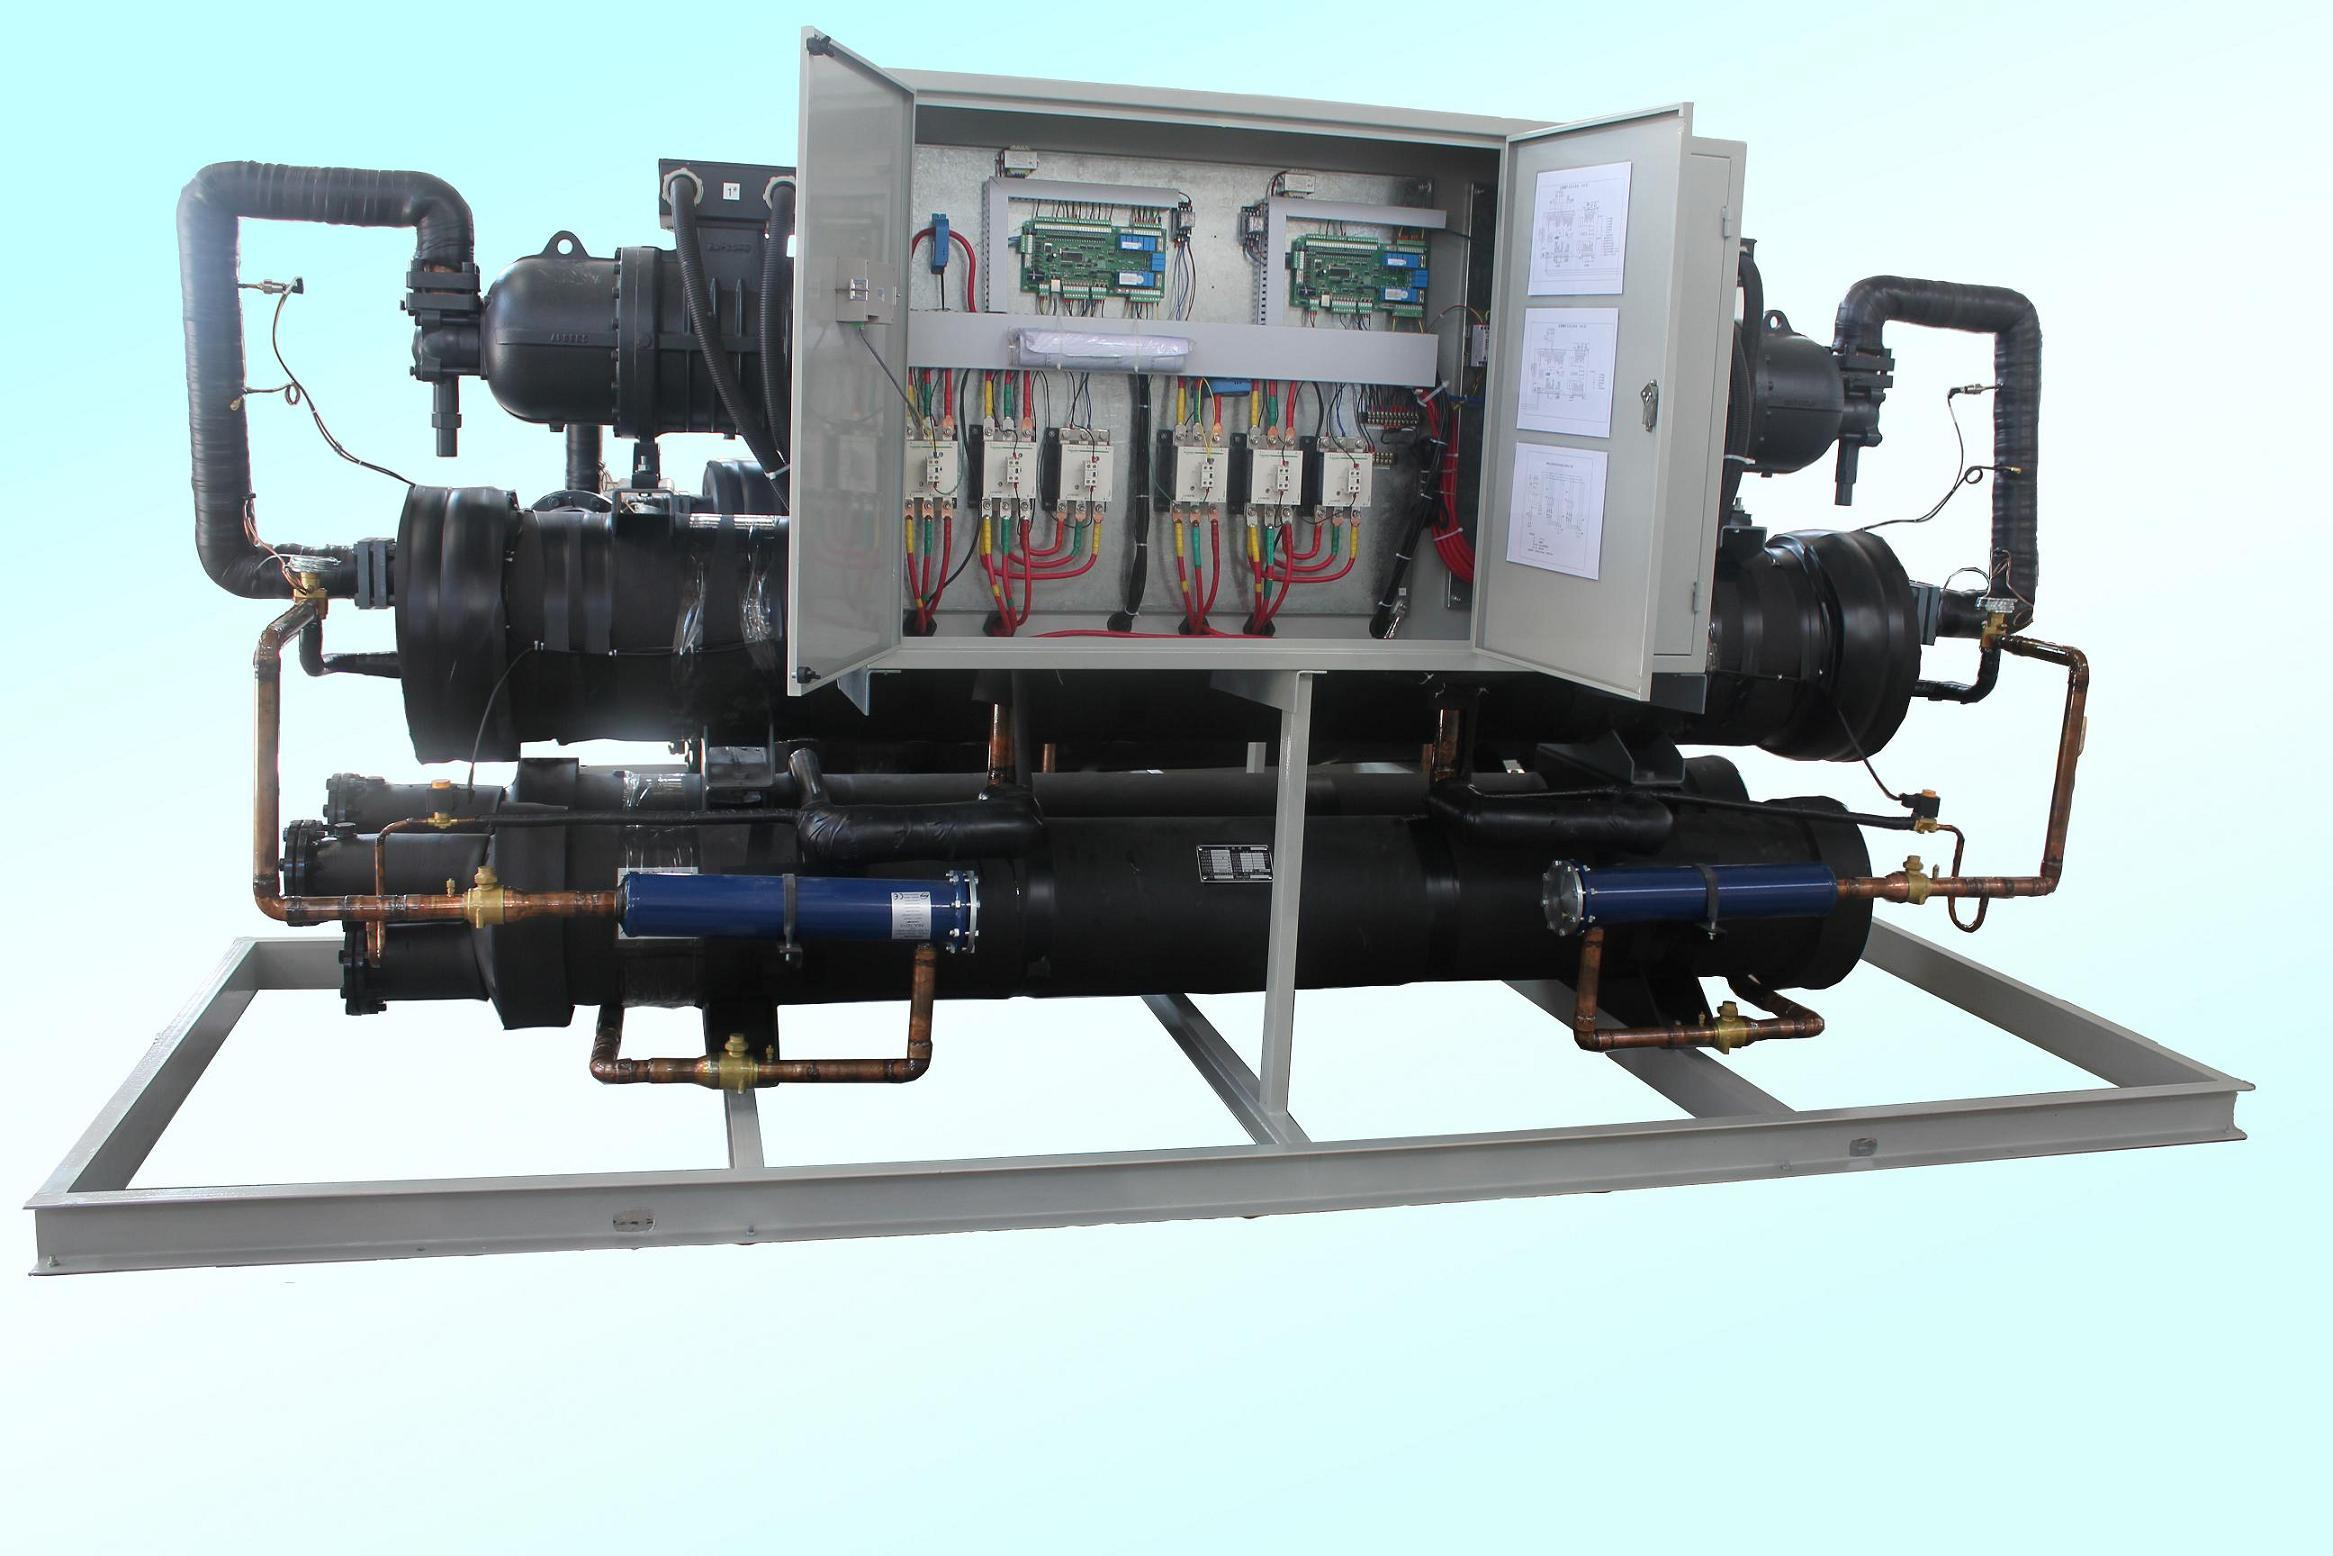 Marine Chiller (HWWL) China Marine Chiller Water Cooled Chiller #21AAAA